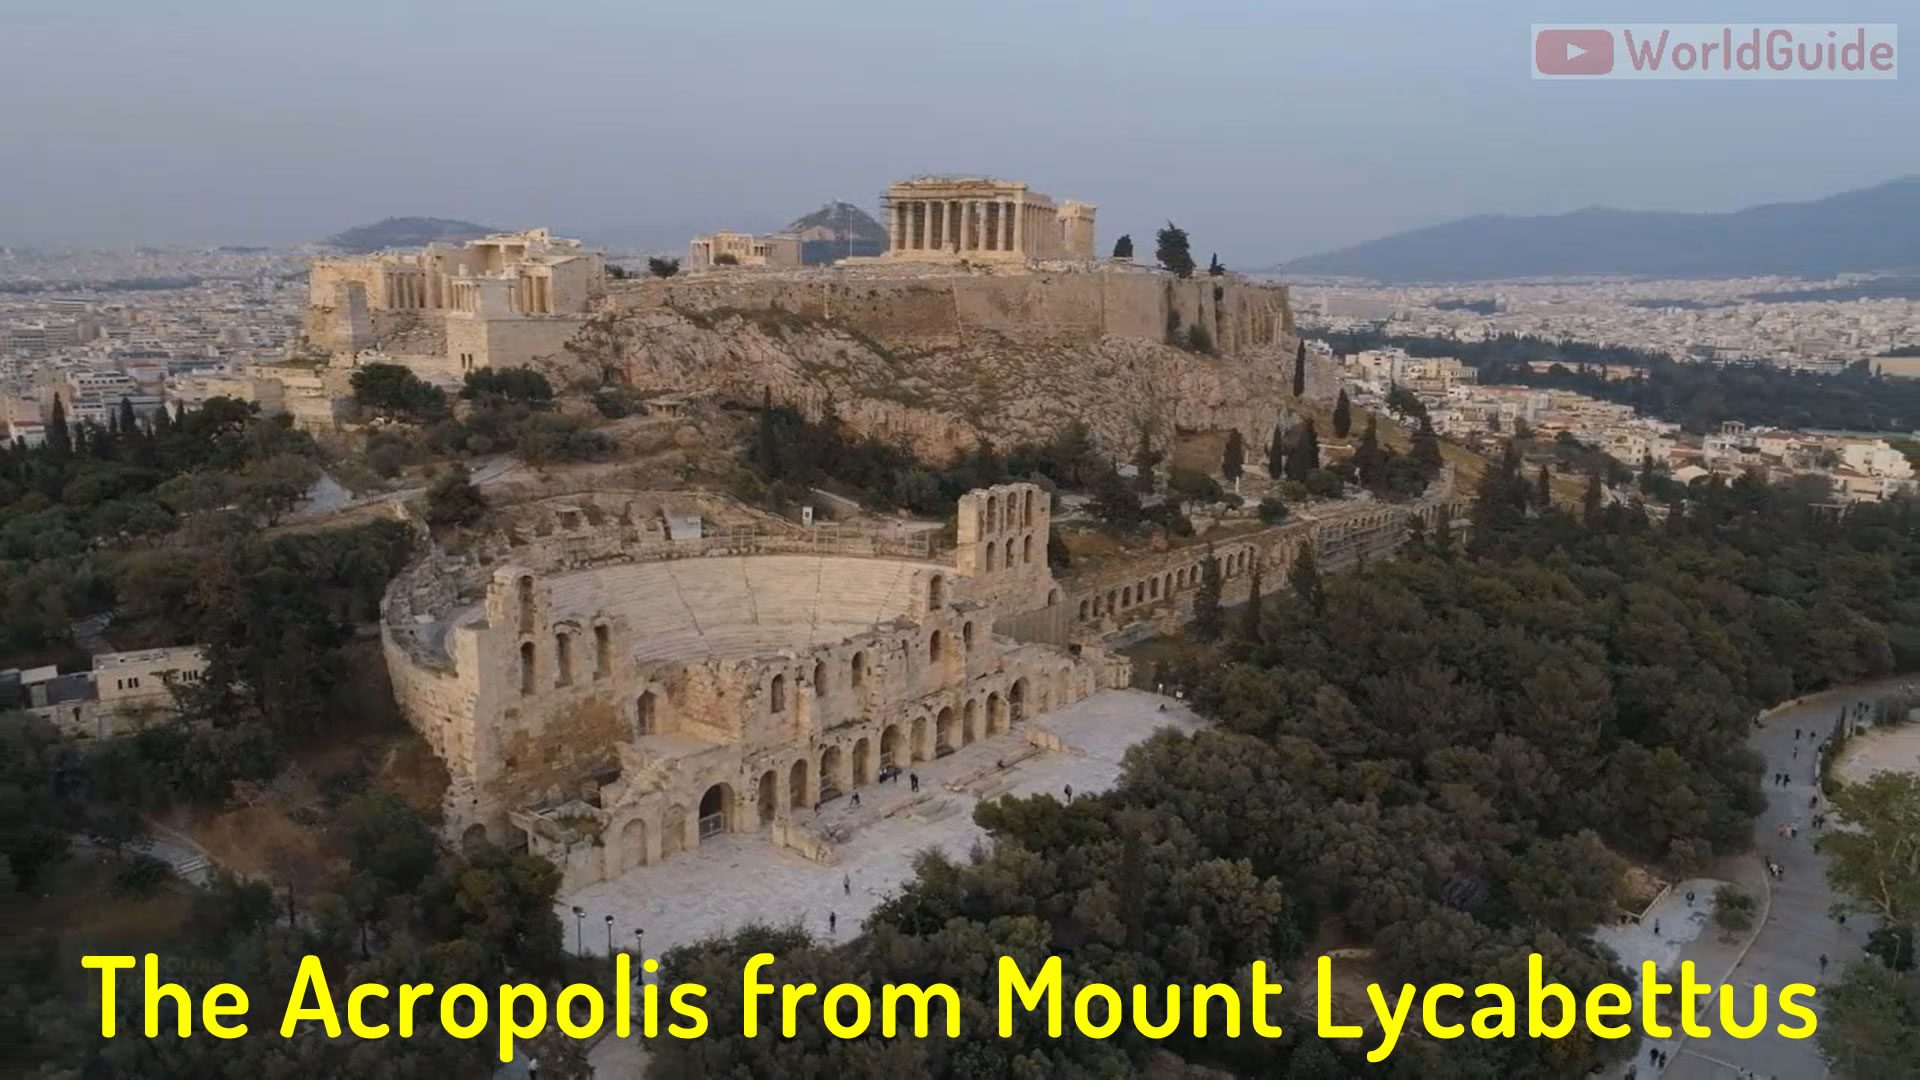 Acropoli from Mount Lycabettus